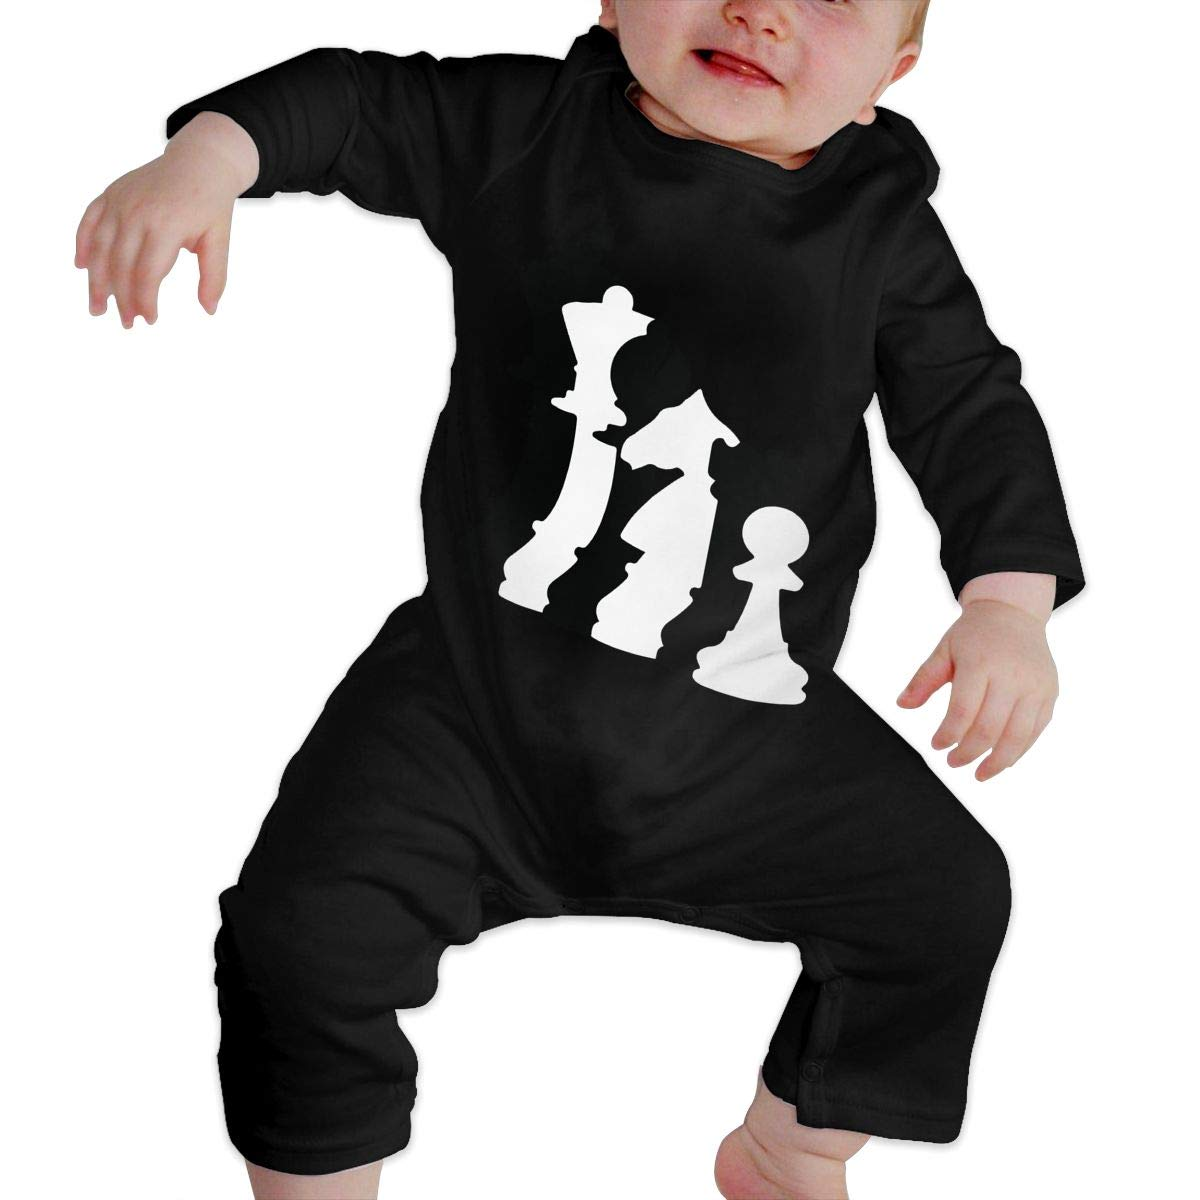 UGFGF-S3 Chess Player Toddler Baby Long Sleeve Bodysuit Kid Pajamas